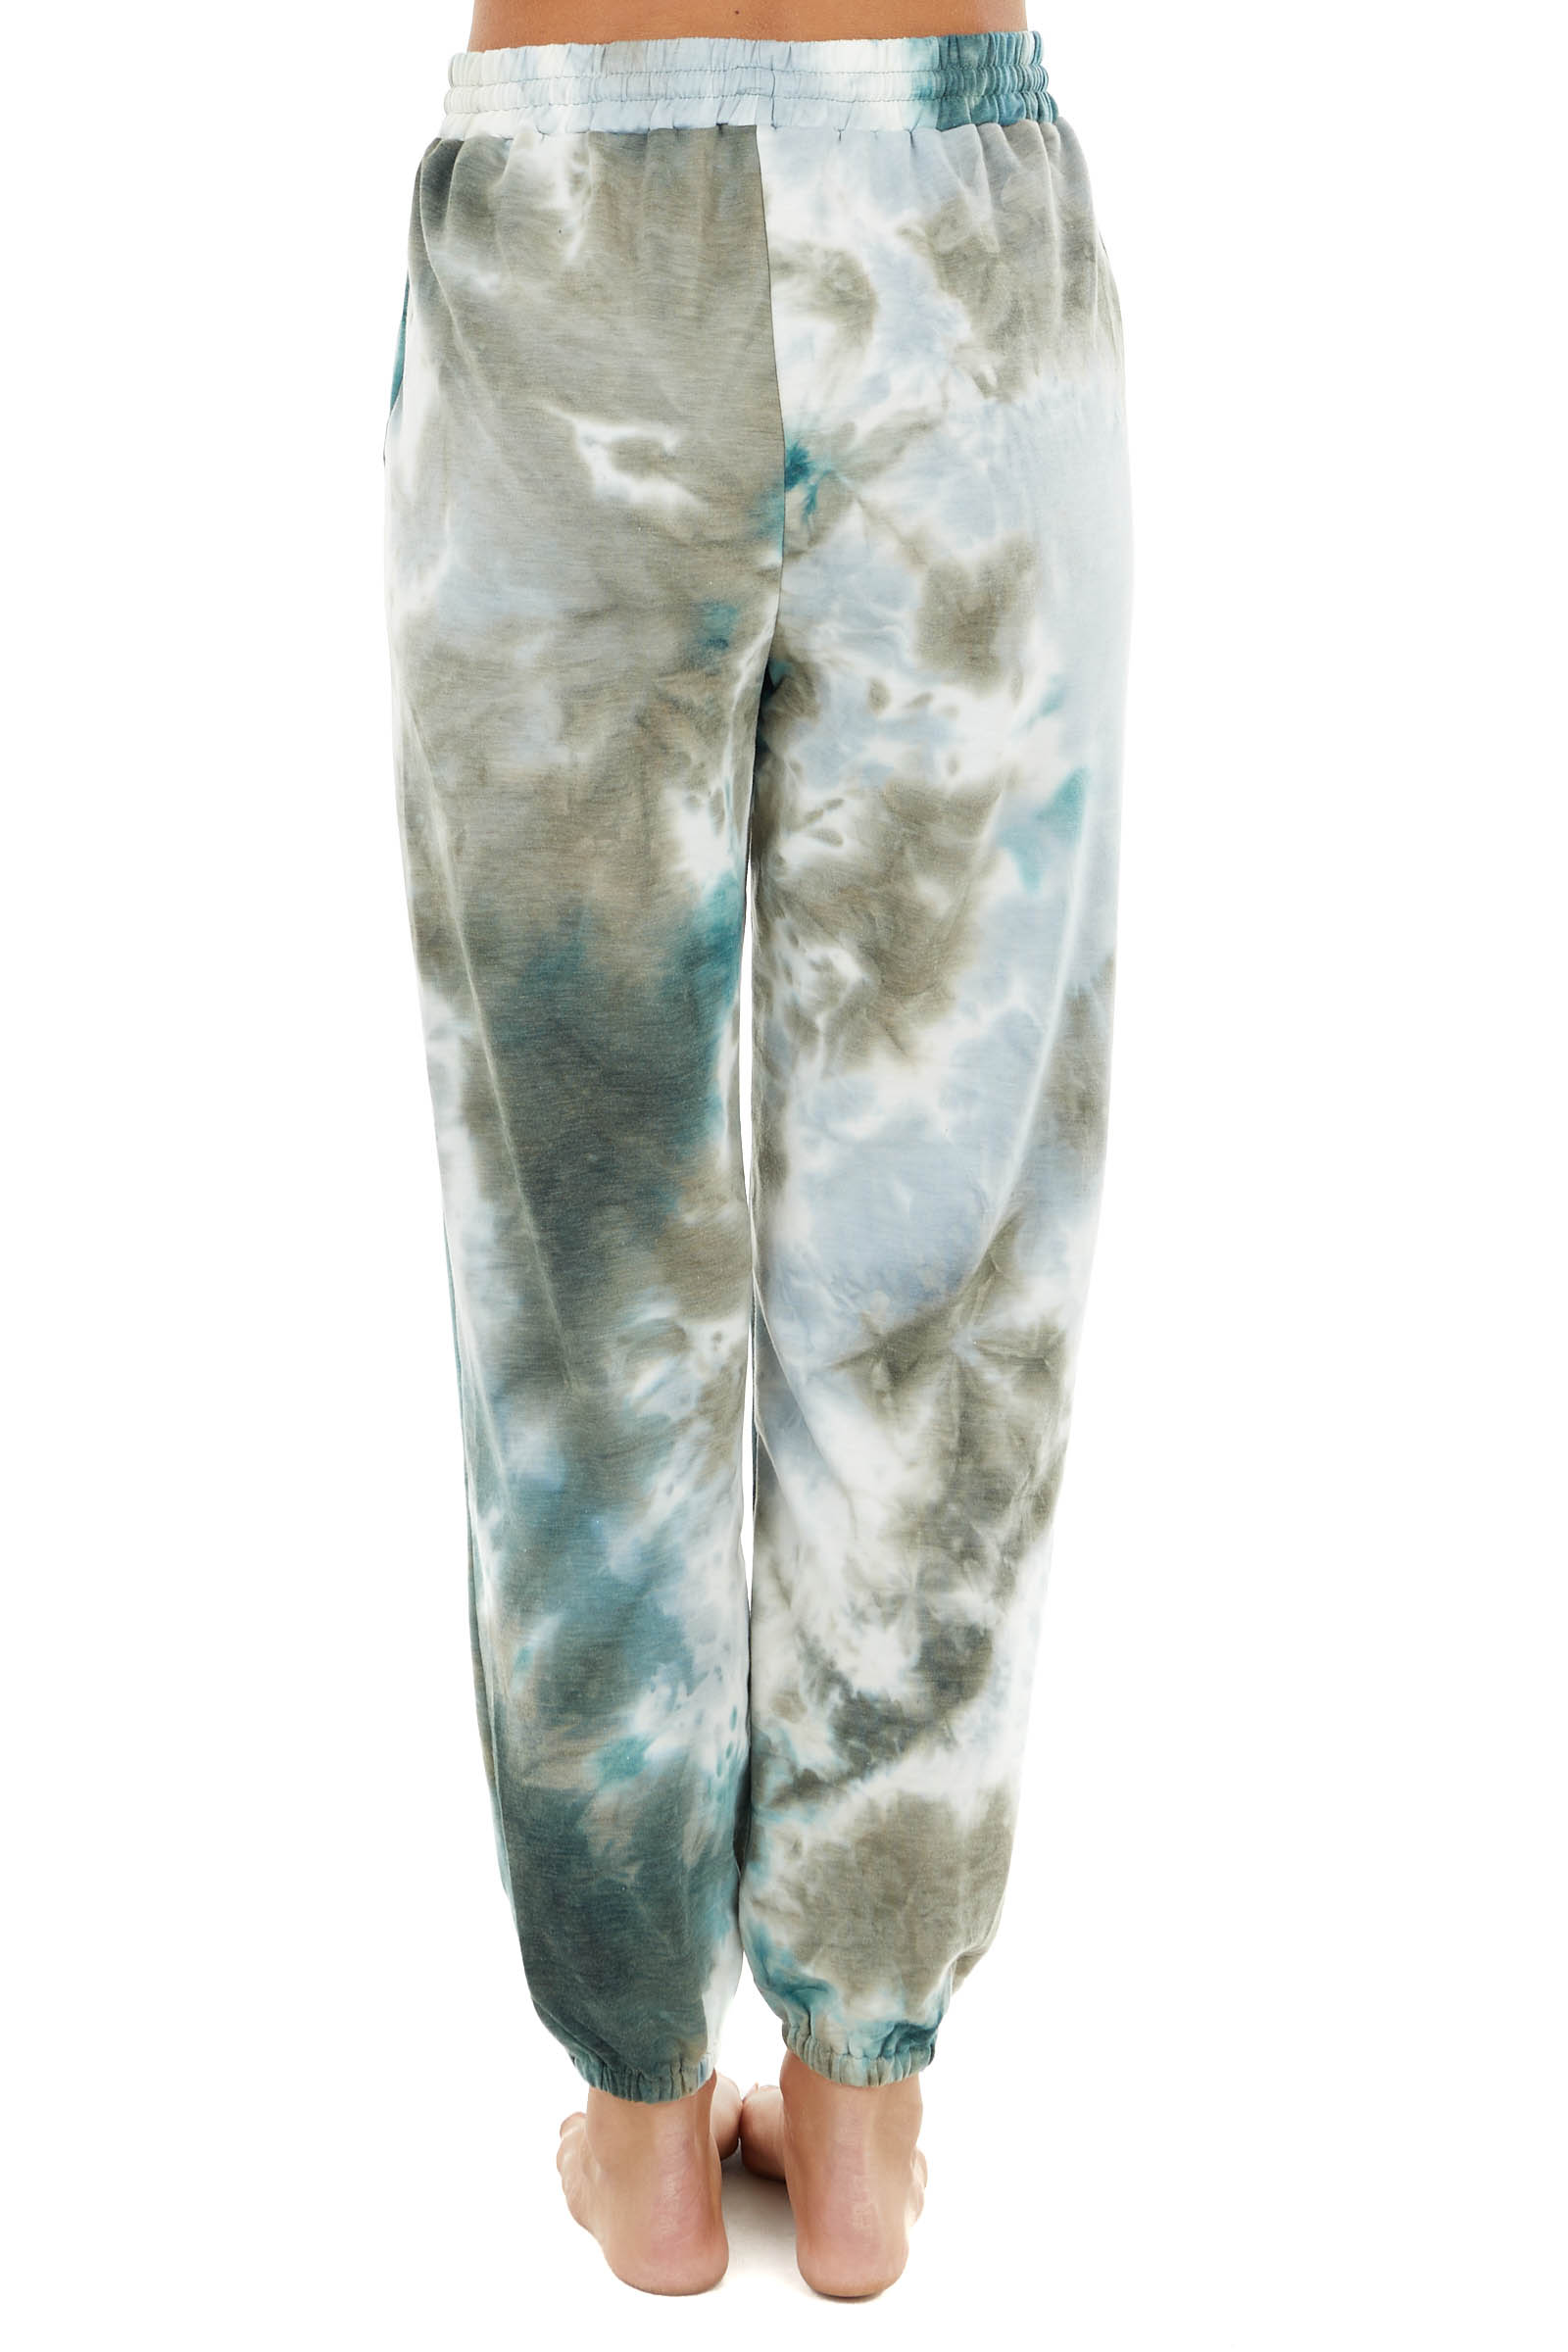 Teal and Taupe Tie Dye Drawstring Sweatpants with Pockets